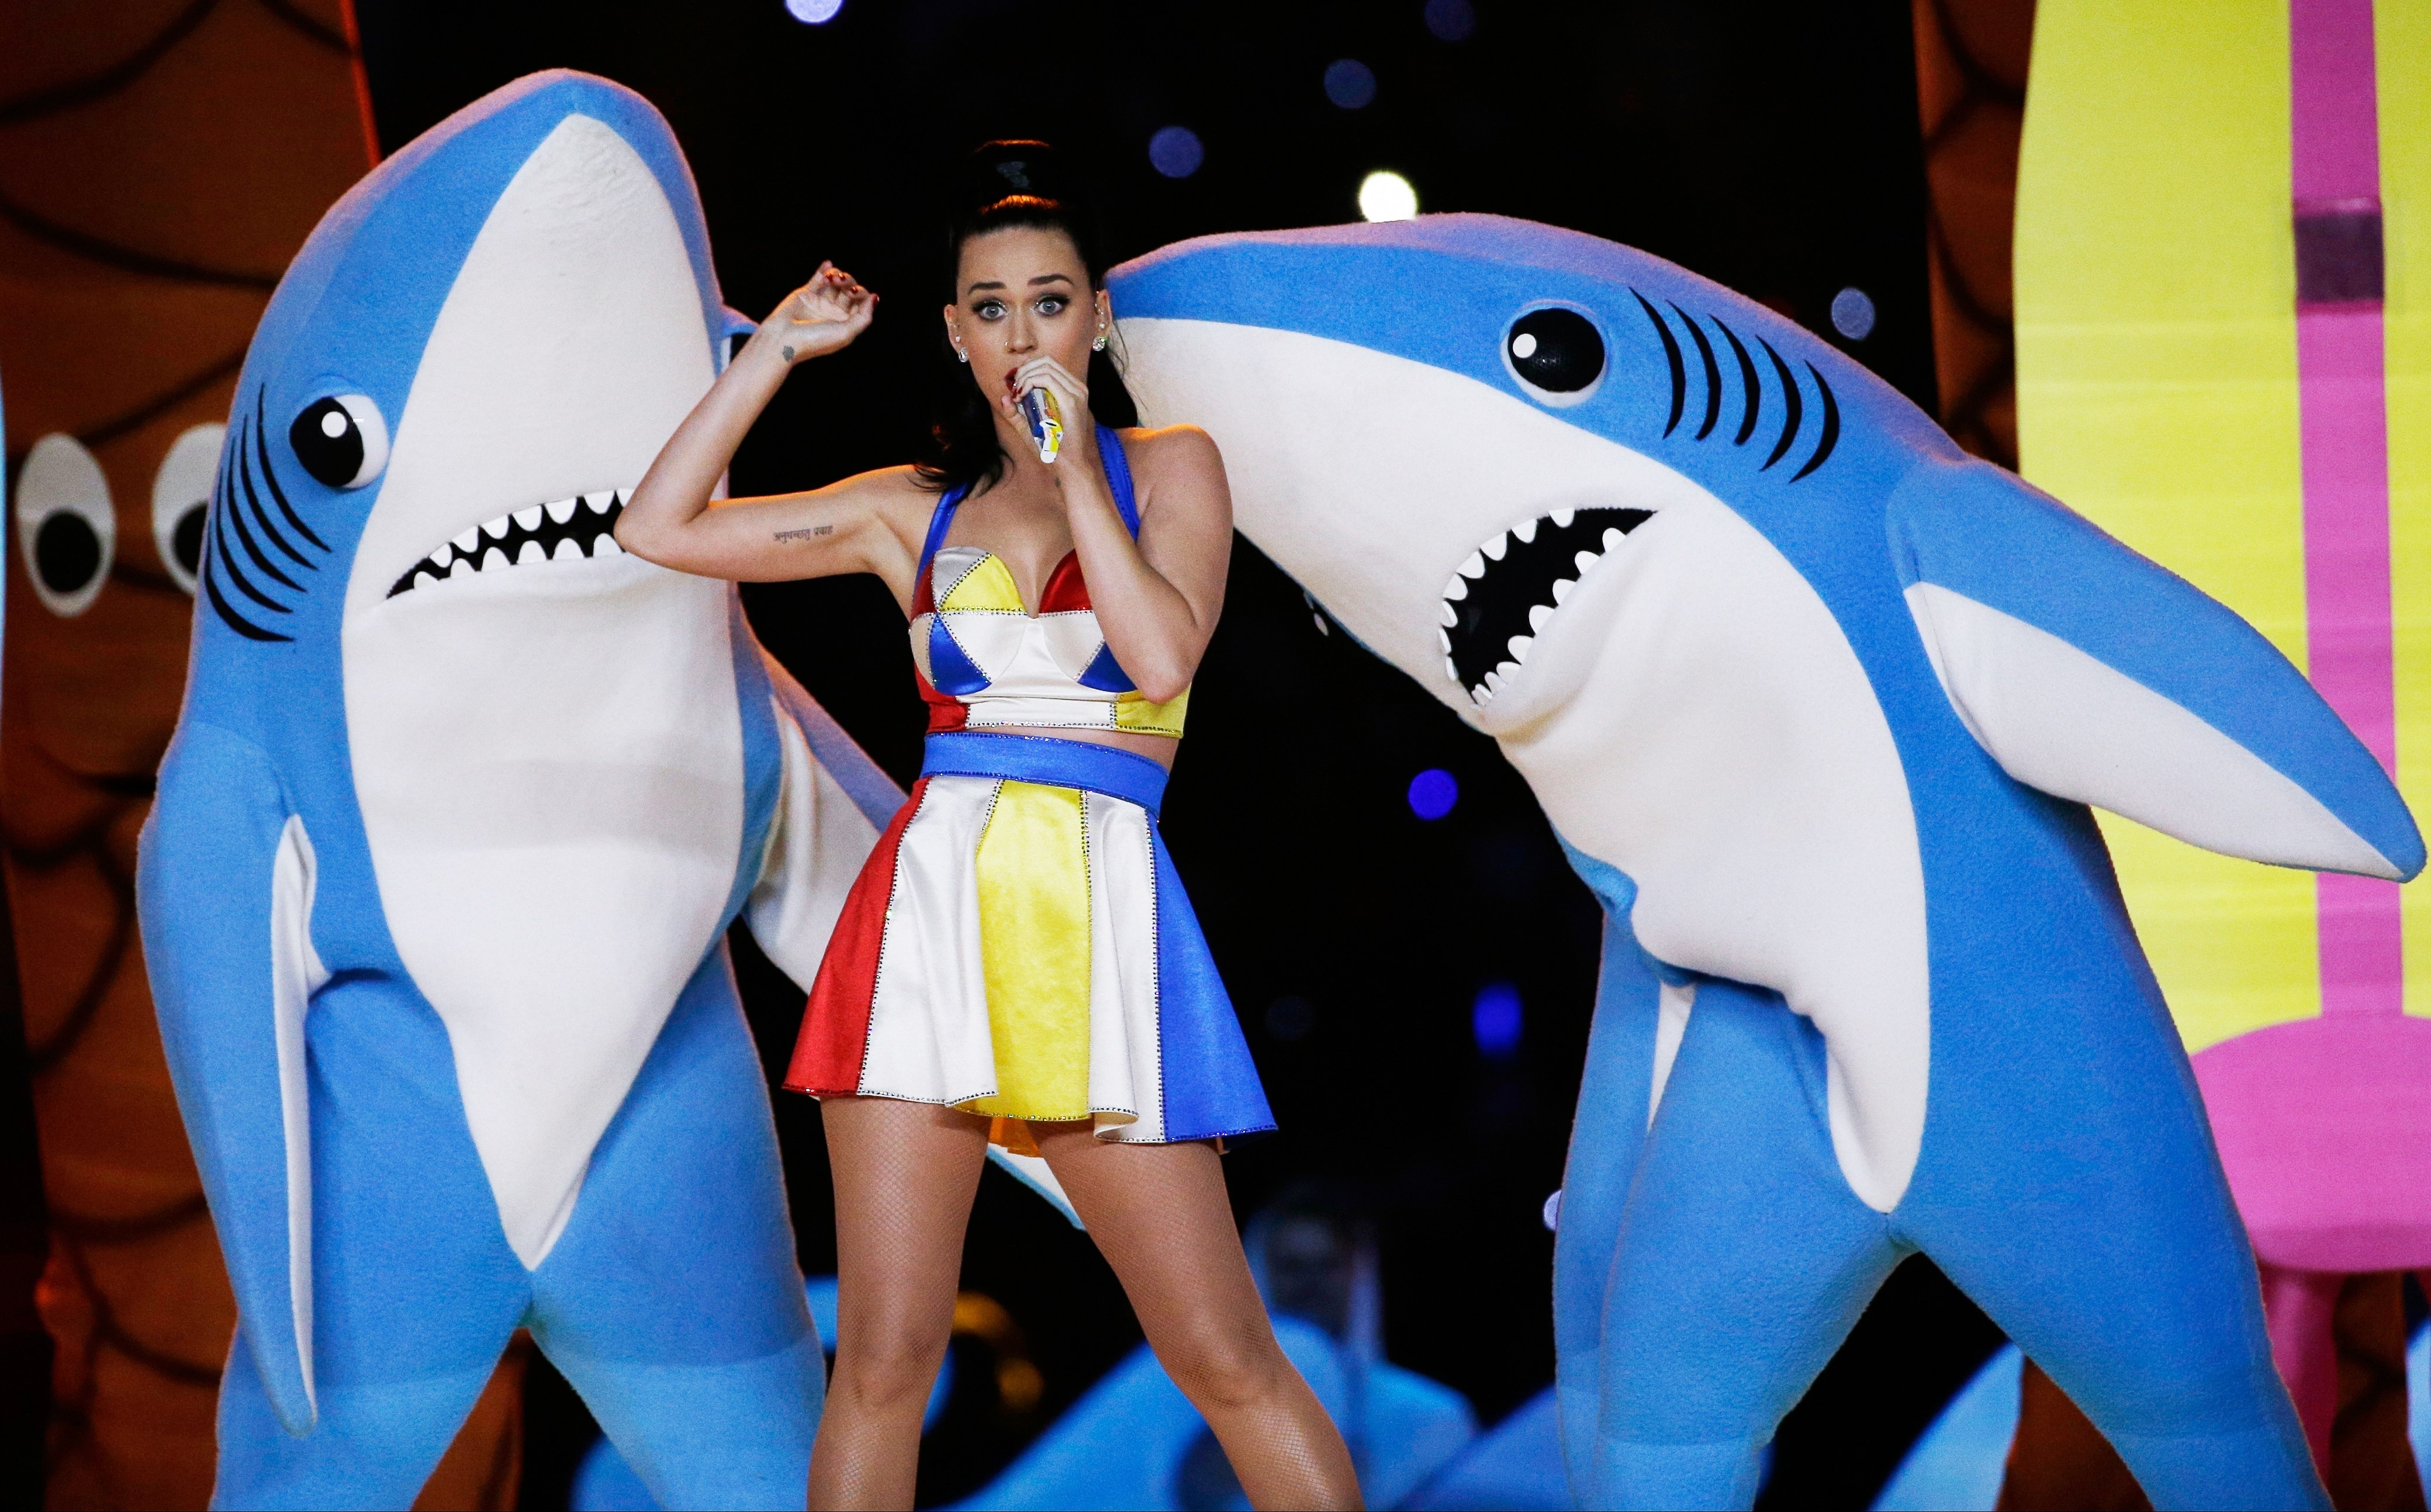 Katy Perry's Super Bowl | The New Yorker within Katy Perry Super Bowl